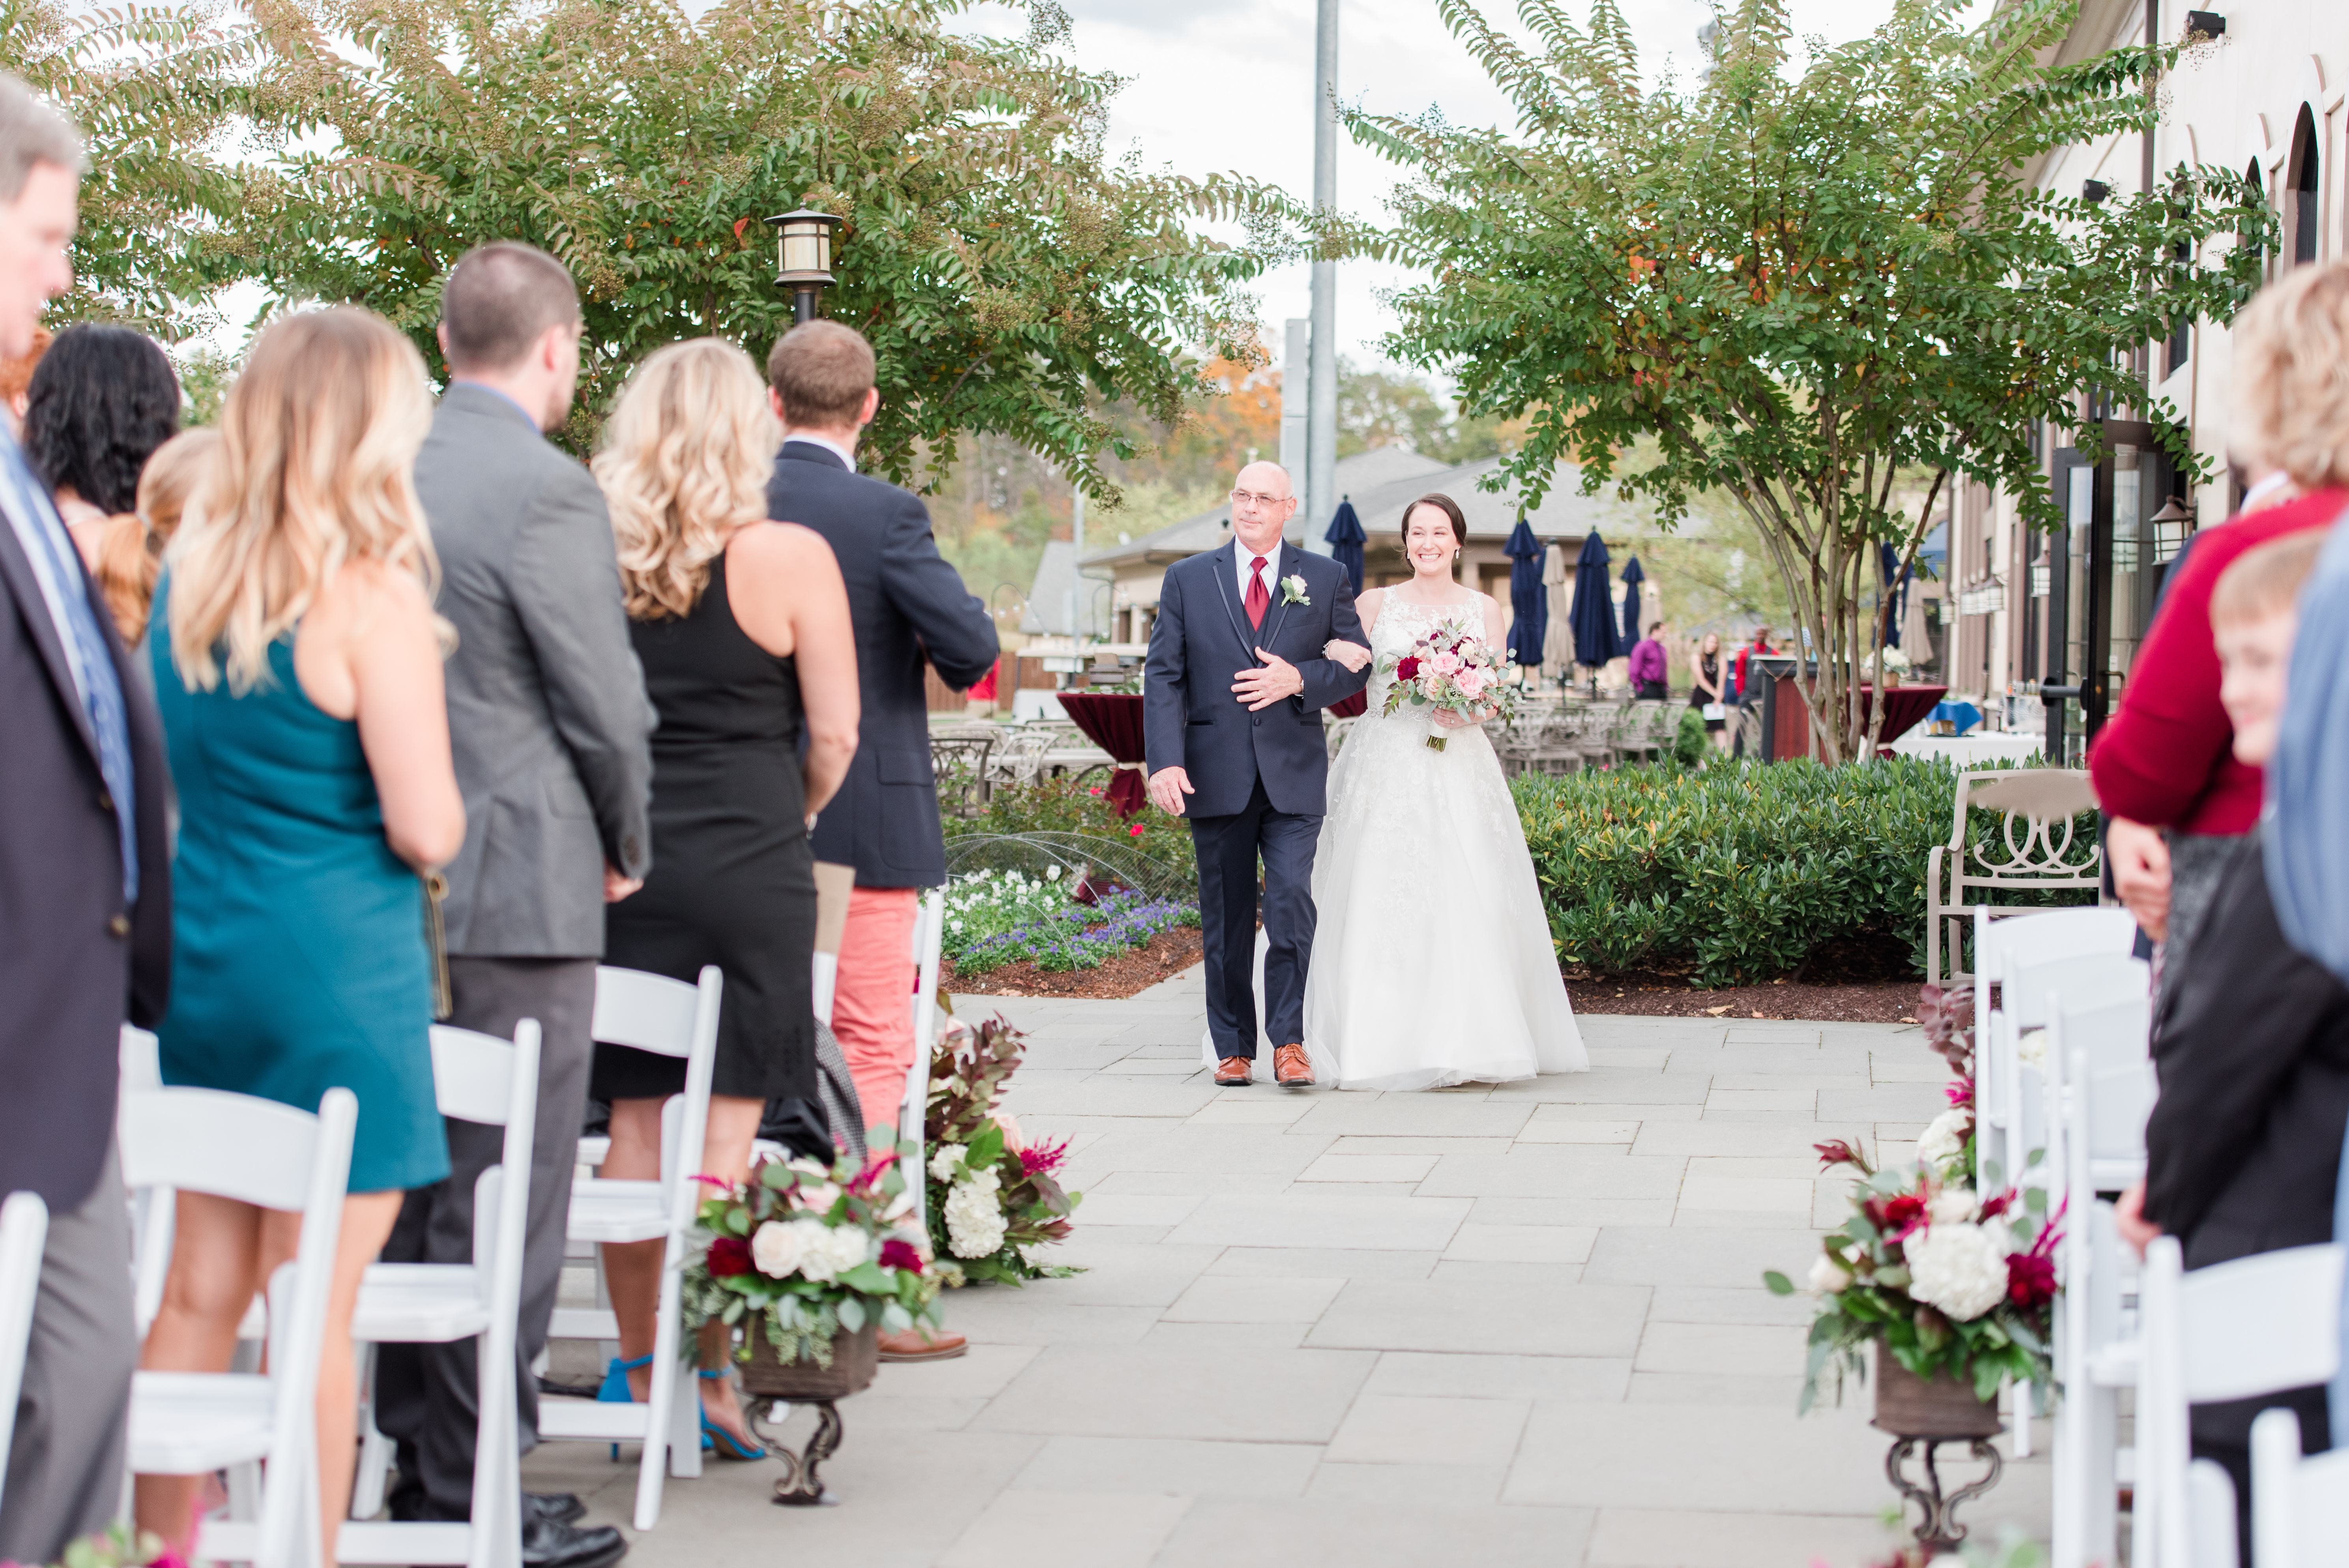 Dana and Will's Wedding Day // Venue: 1757 Golf Club // Hair & Makeup: Best Face Forward // Florist: Blooms Reston Floral // Cake: Sweets by E // Wedding Dress: Jeanette's Bridal // Photographer: Emily Alyssa Photography ( Image: Emily Alyssa Photography // http://emilyalyssa.com)